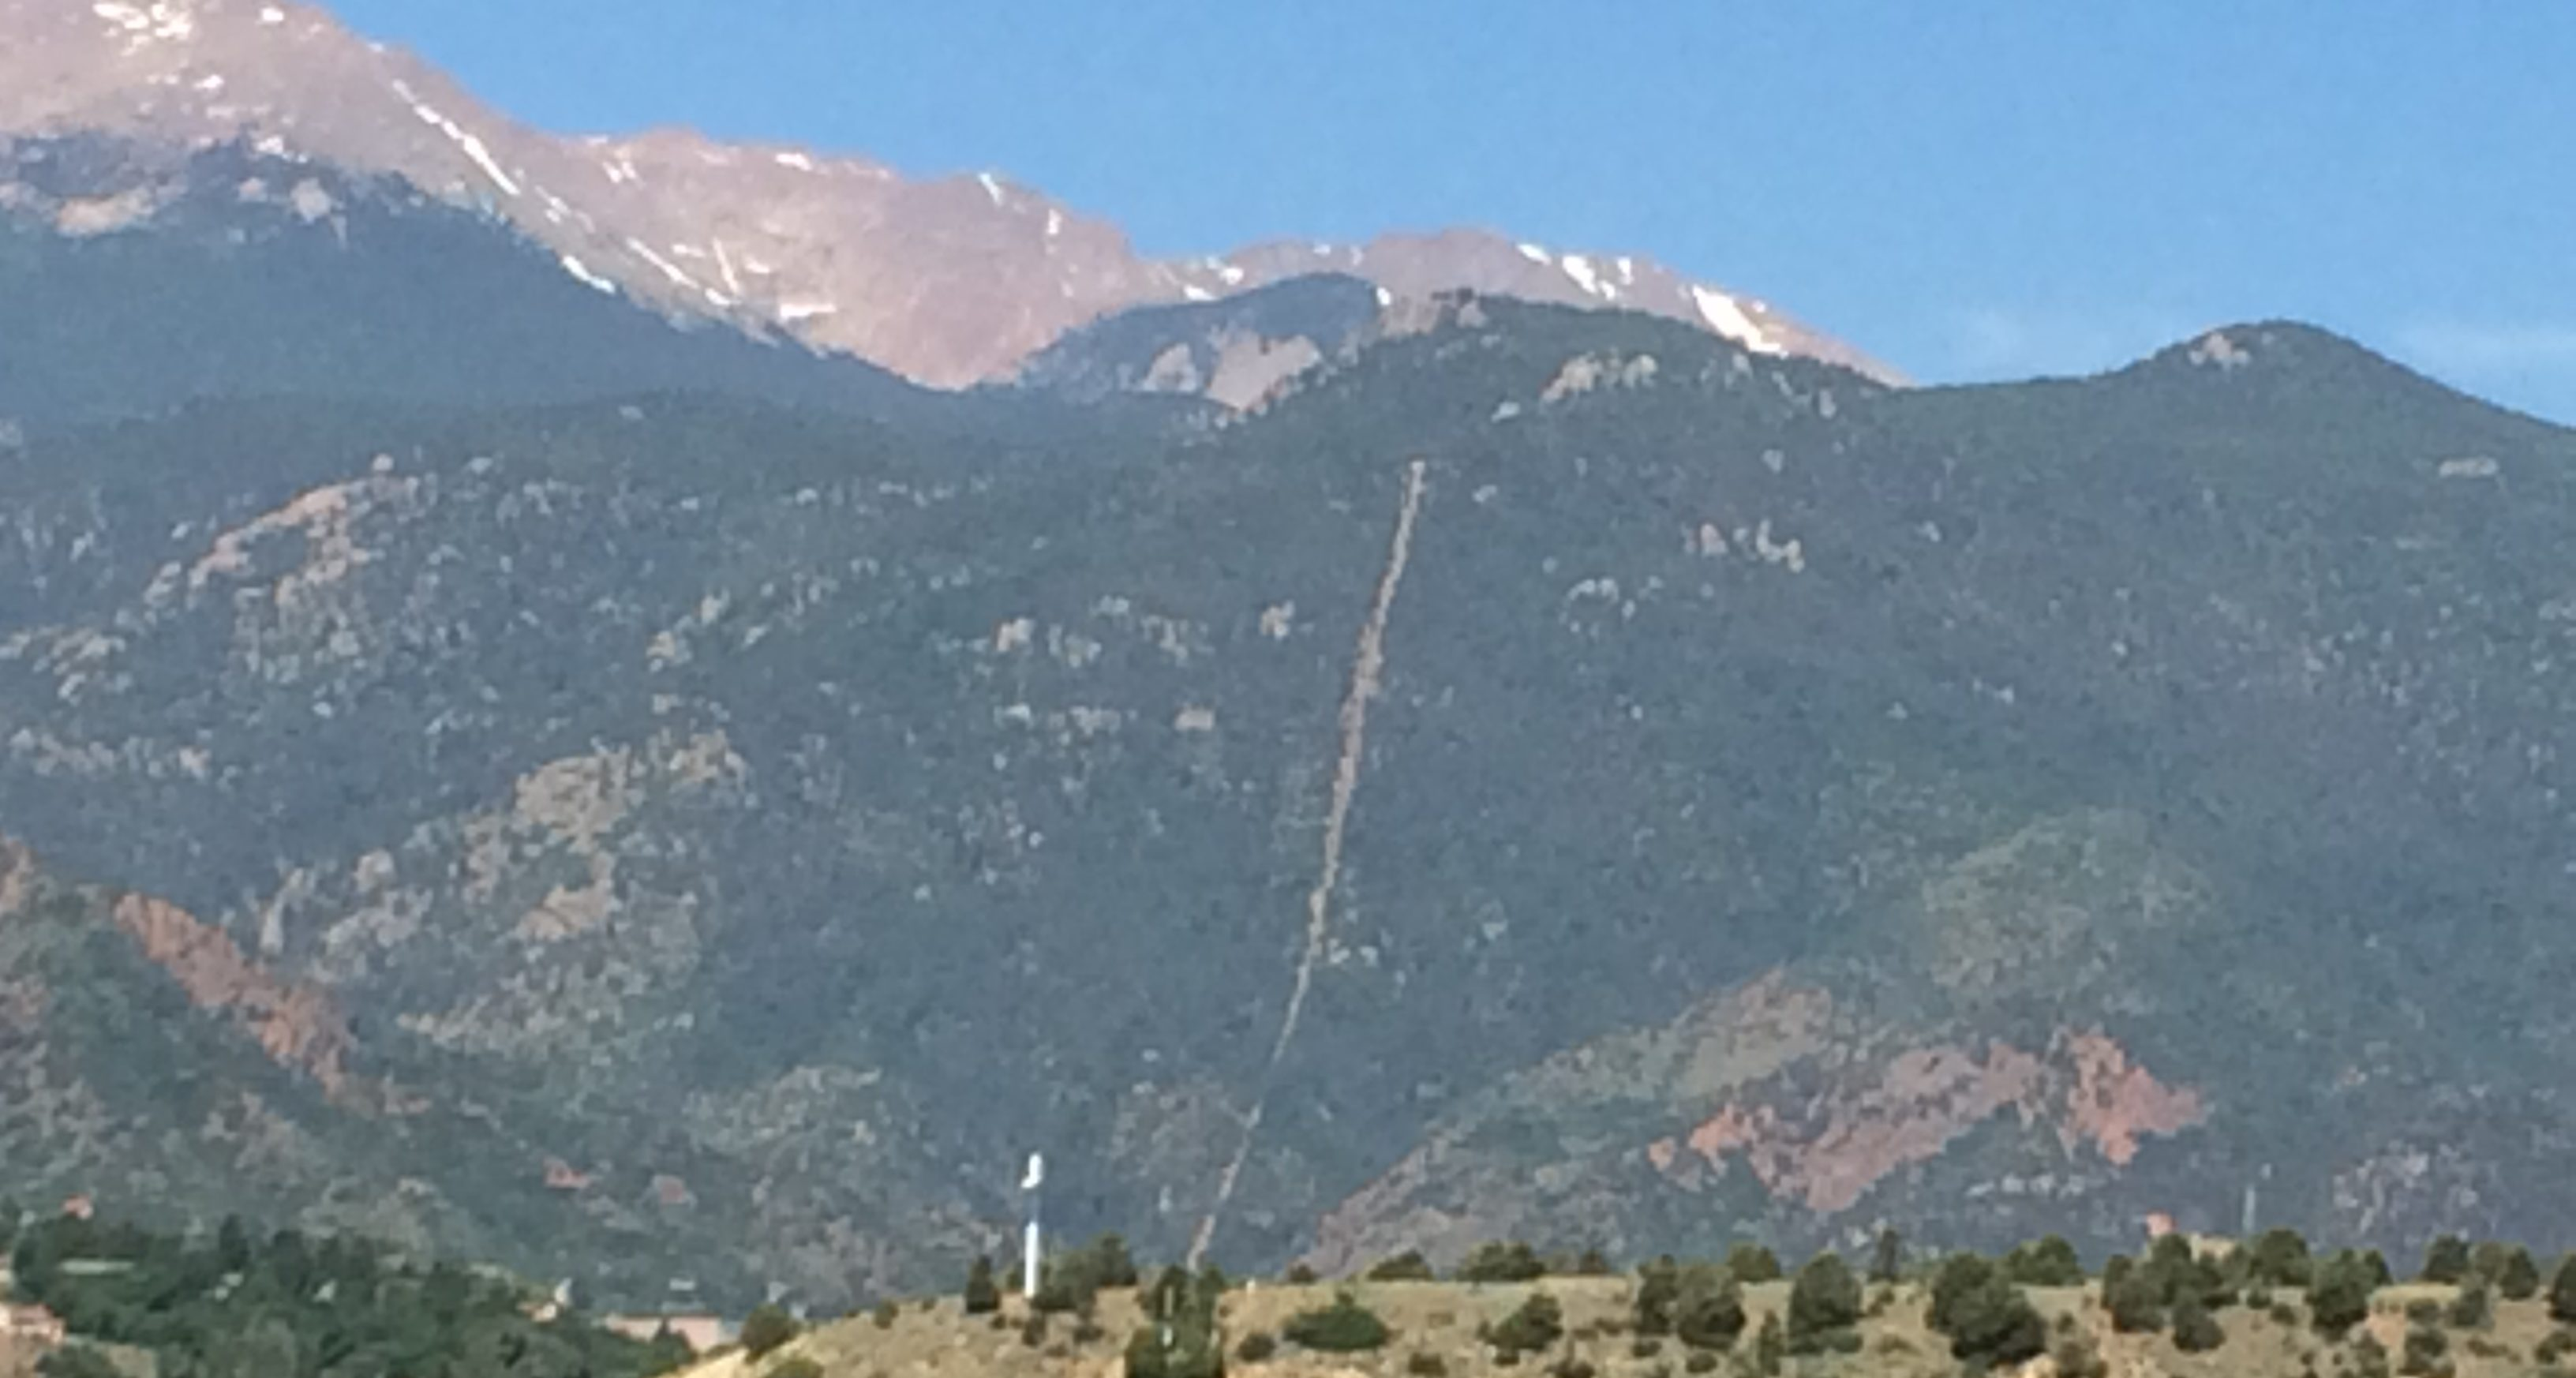 Manitou Incline: An Exercise in Argyle